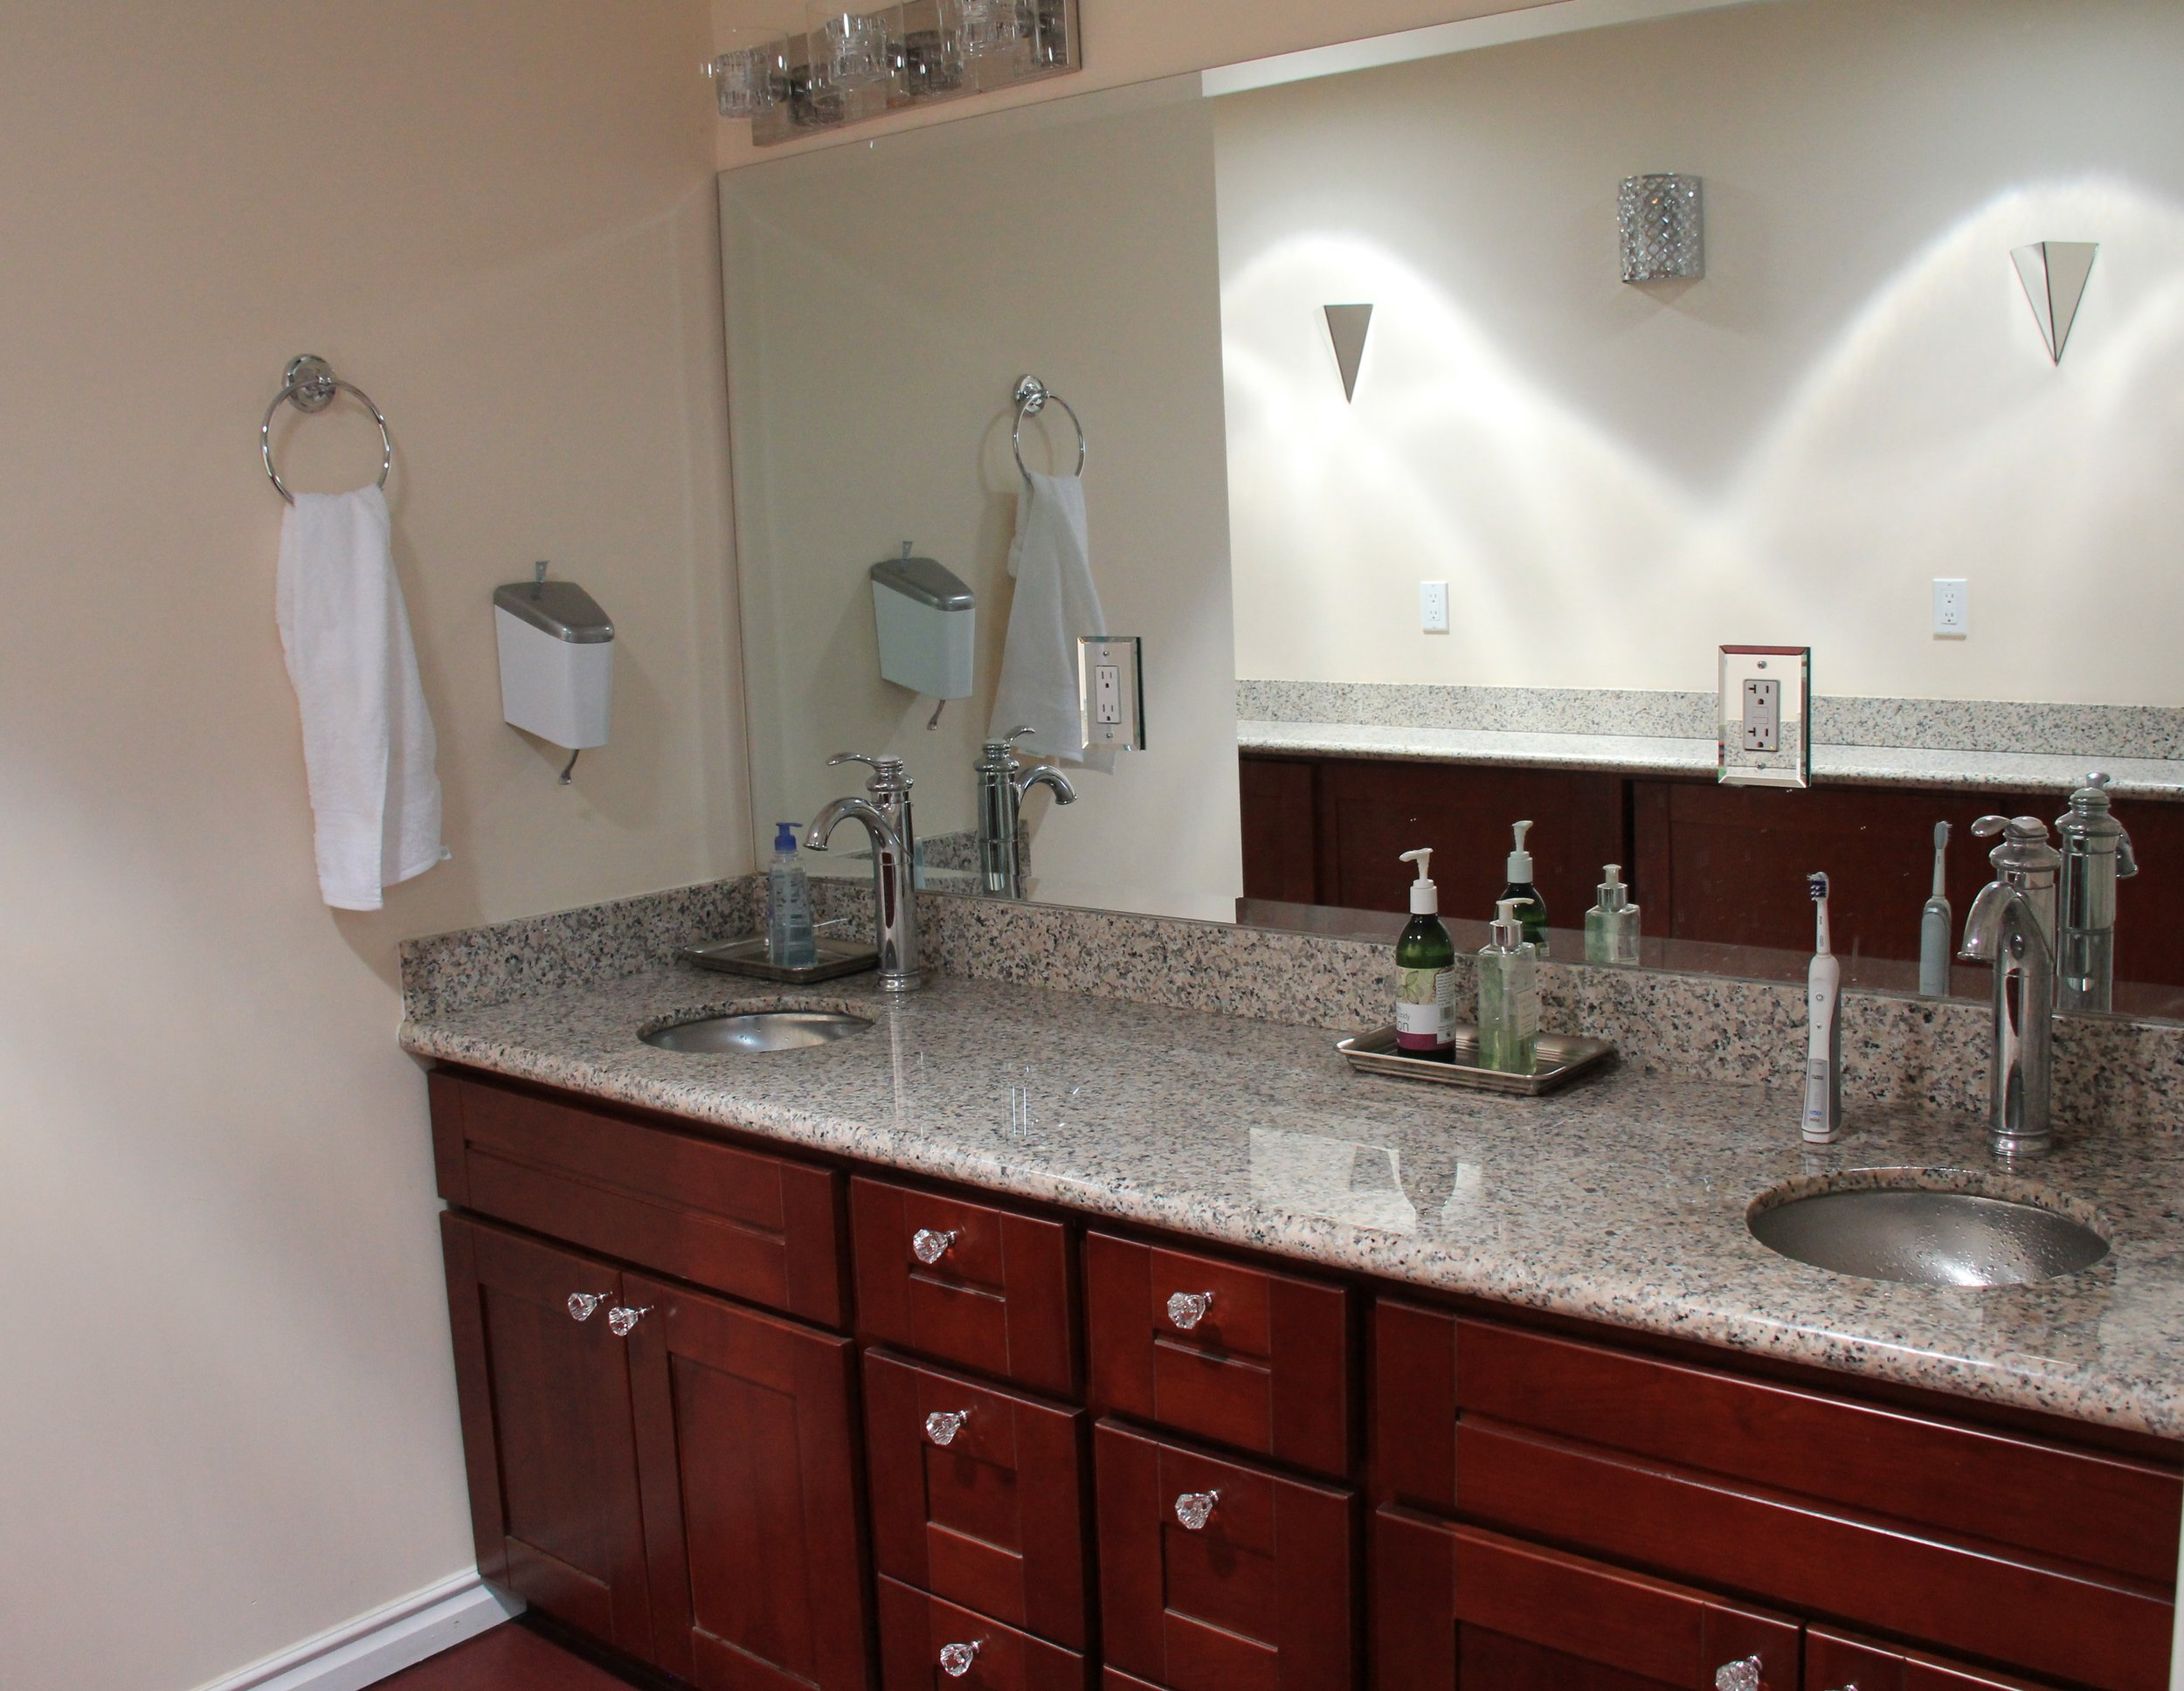 Granite countertop and double sinks in Lodge bathroom